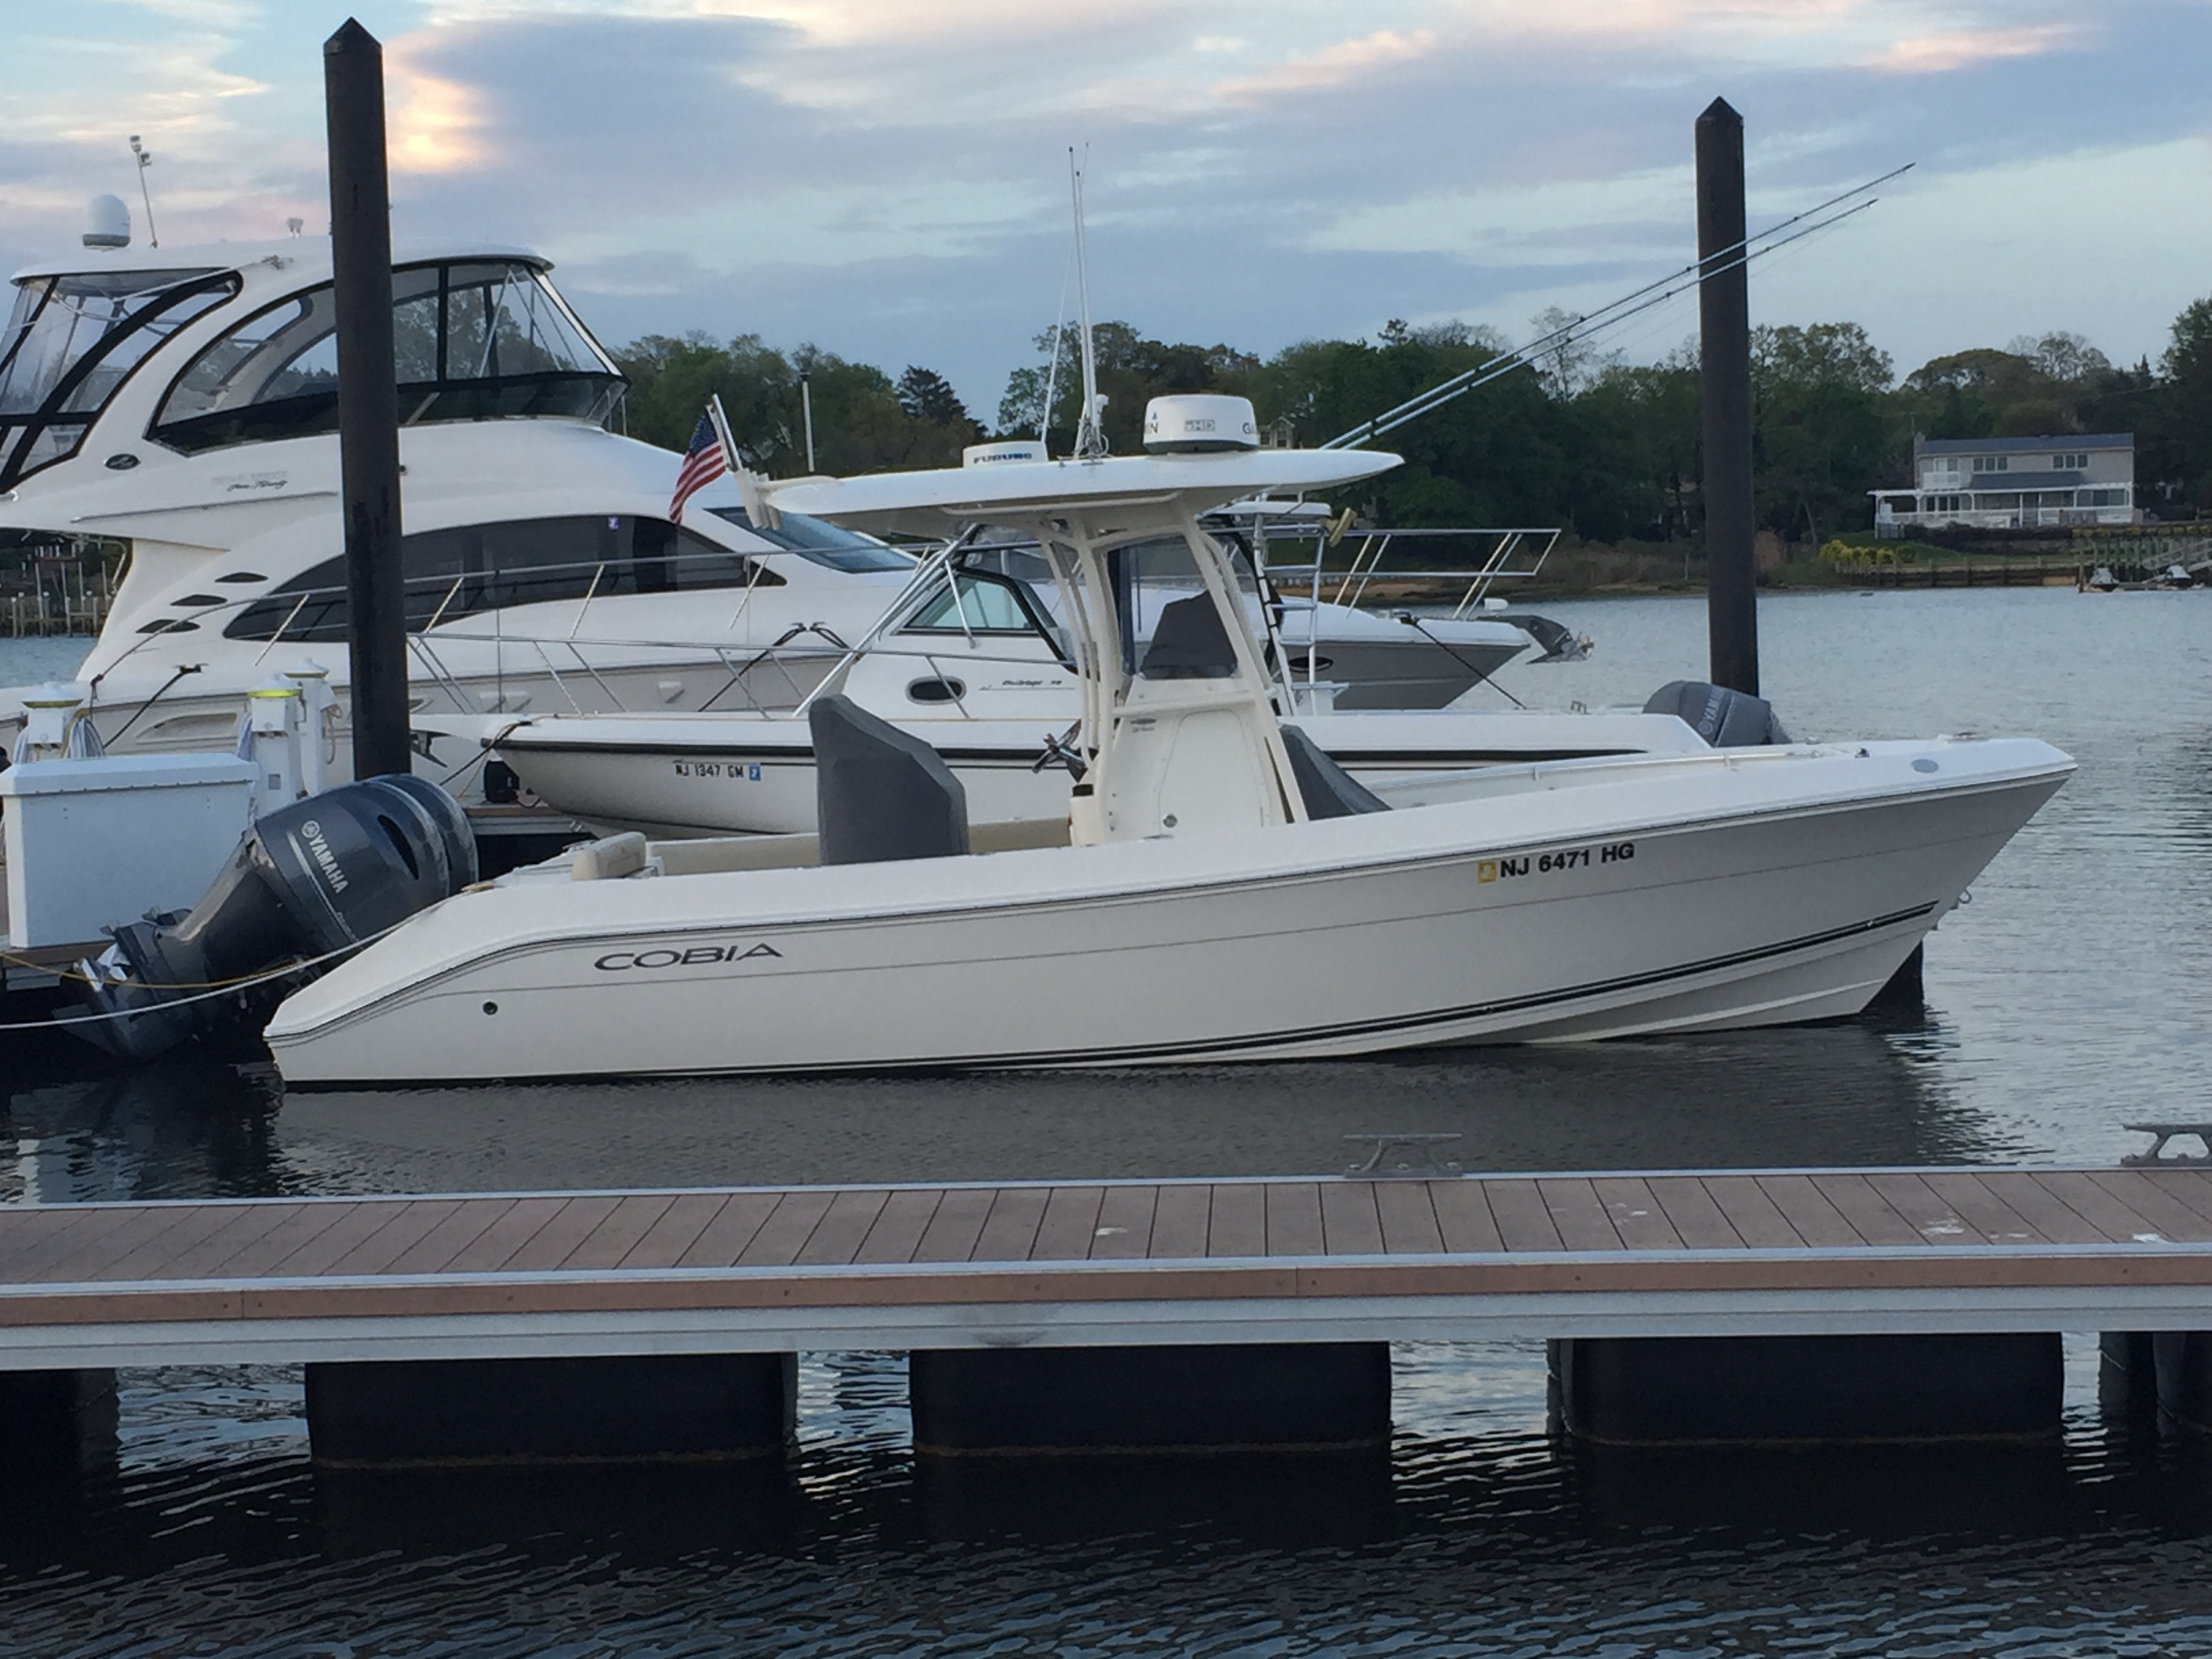 Cobia Boats Boats For Sale In New Jersey